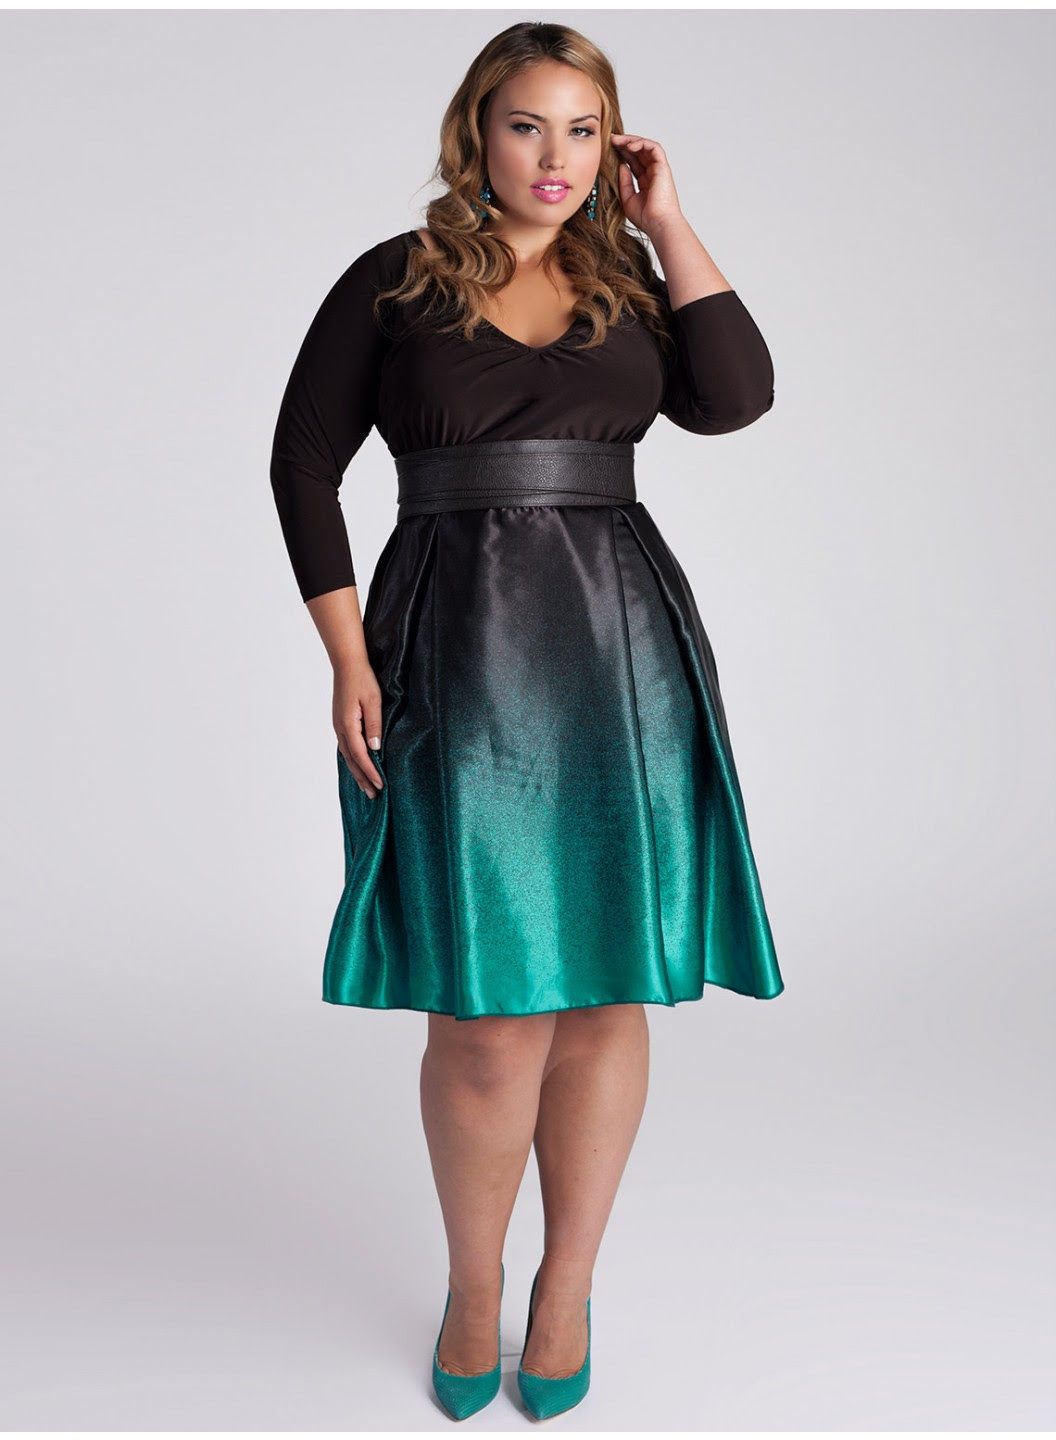 33 plus size dresses for 2015 – the wow style